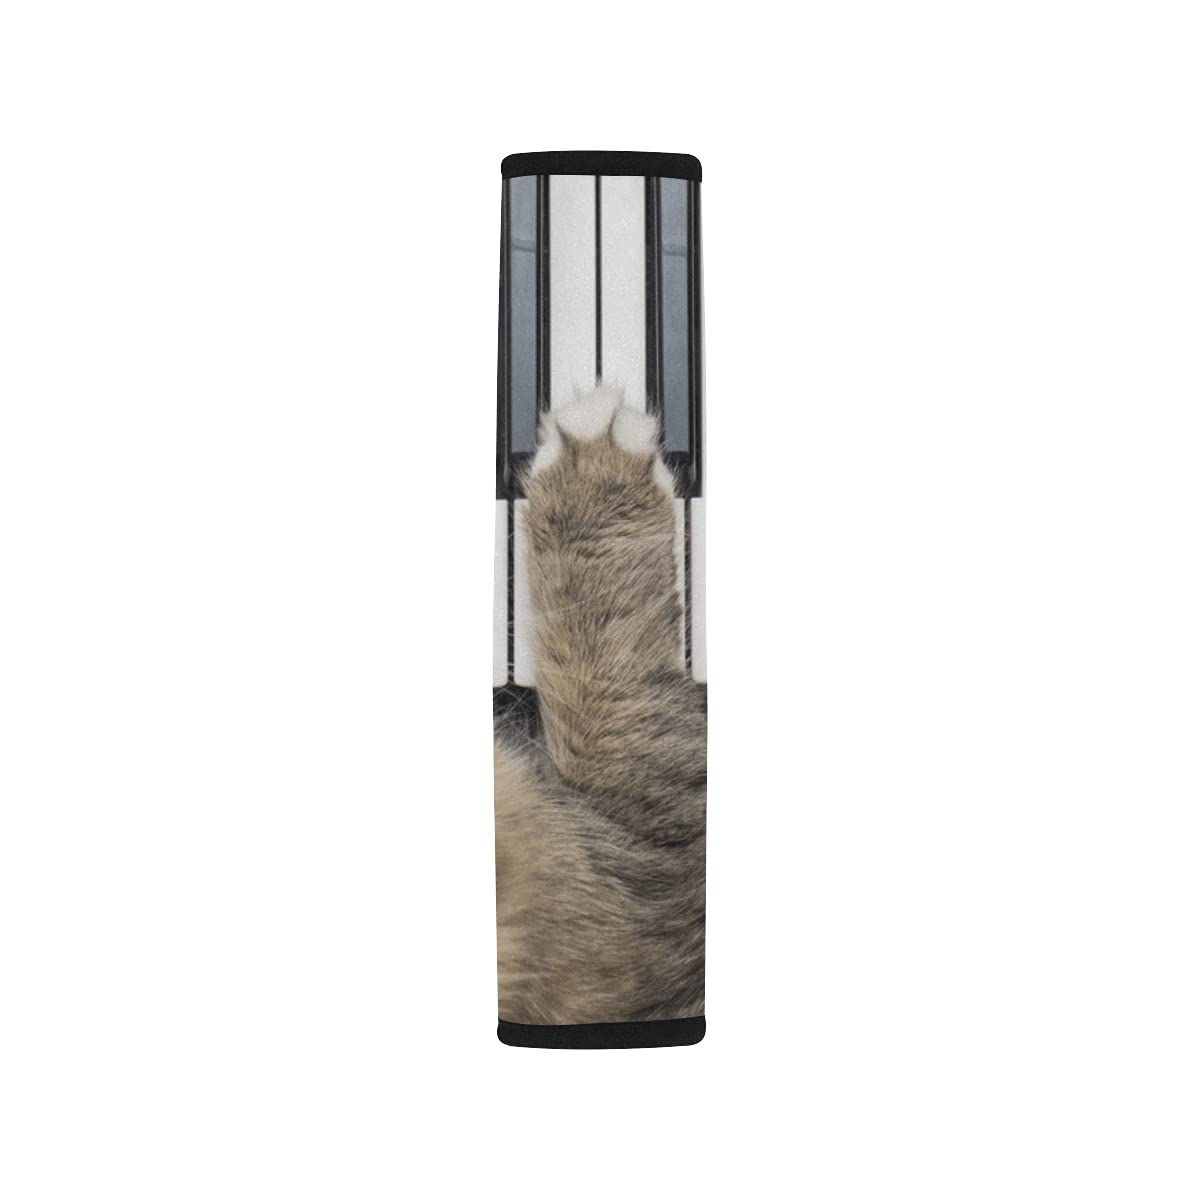 2pcs At the price of surprise Car Sale special price Seat Belt Cover Siberian Midi Cat Playing Forest Contro